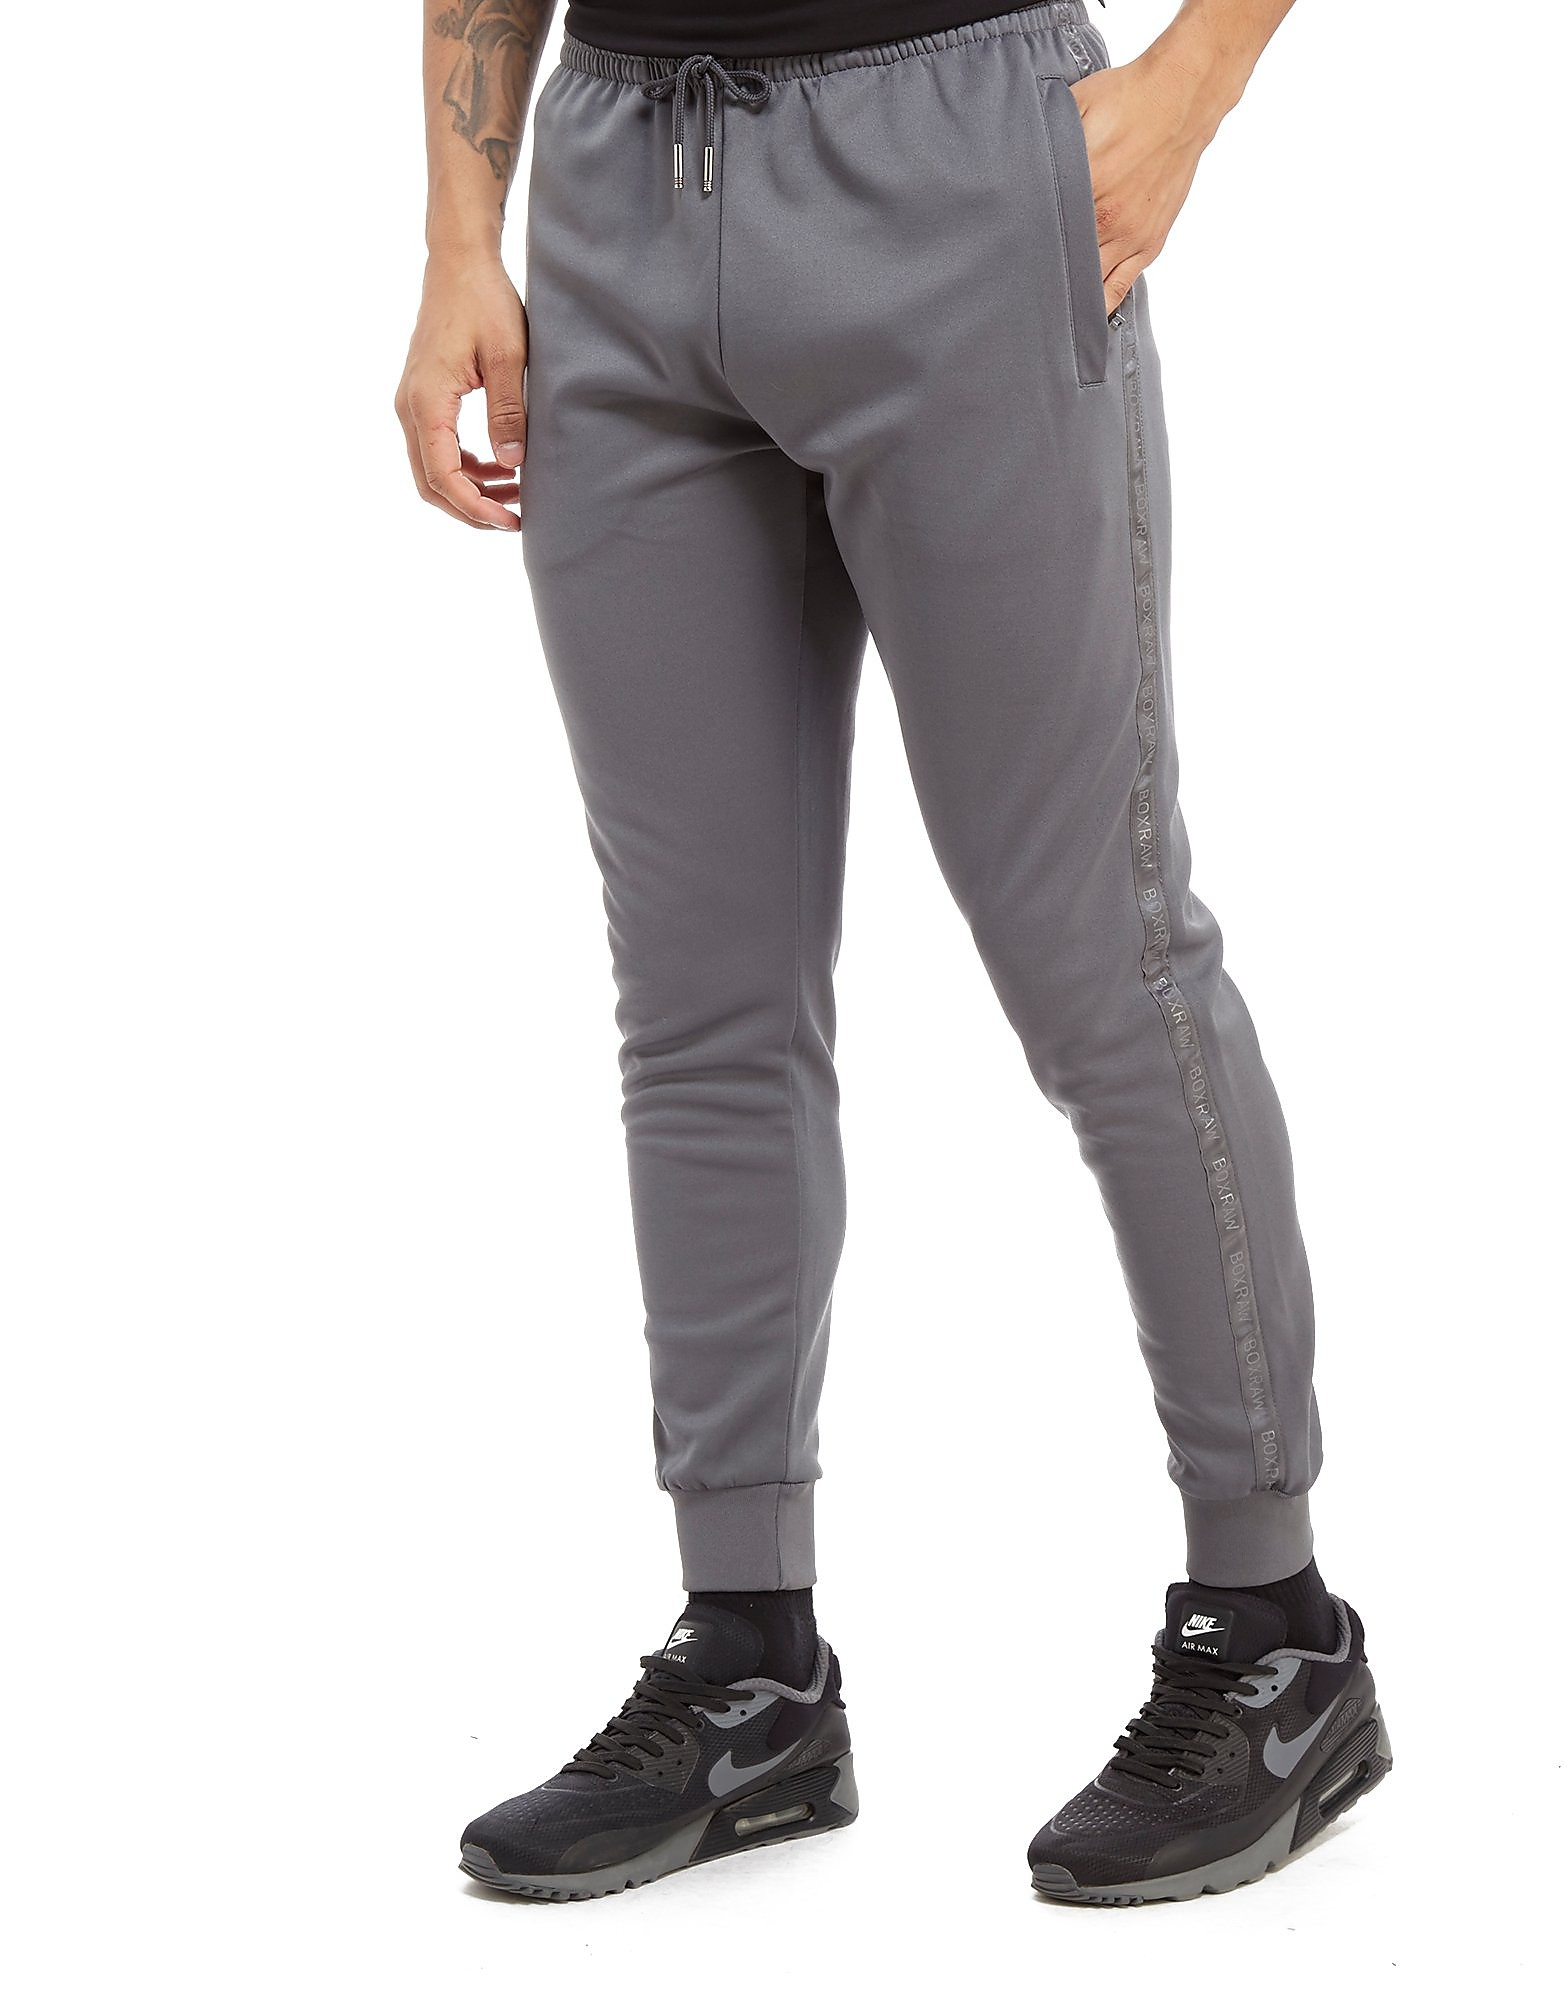 BOXRAW Poly Tape Pants